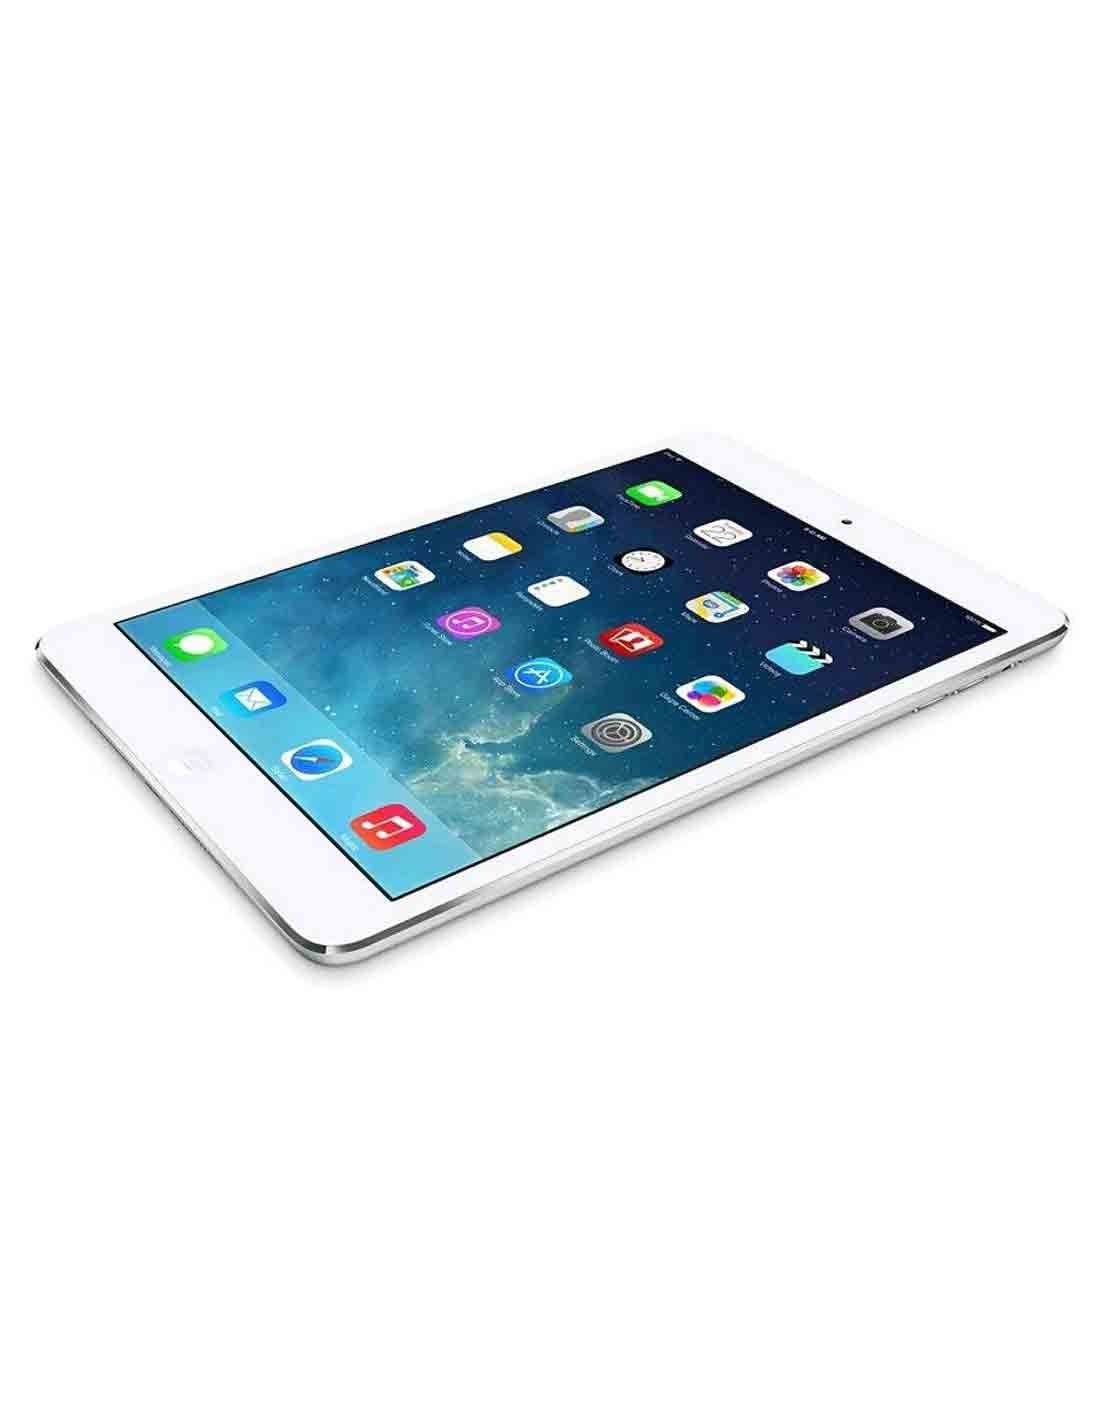 Apple iPad mini 2 16GB Silver ME279B/A Buy Online at an Affordable Price in the Middle East